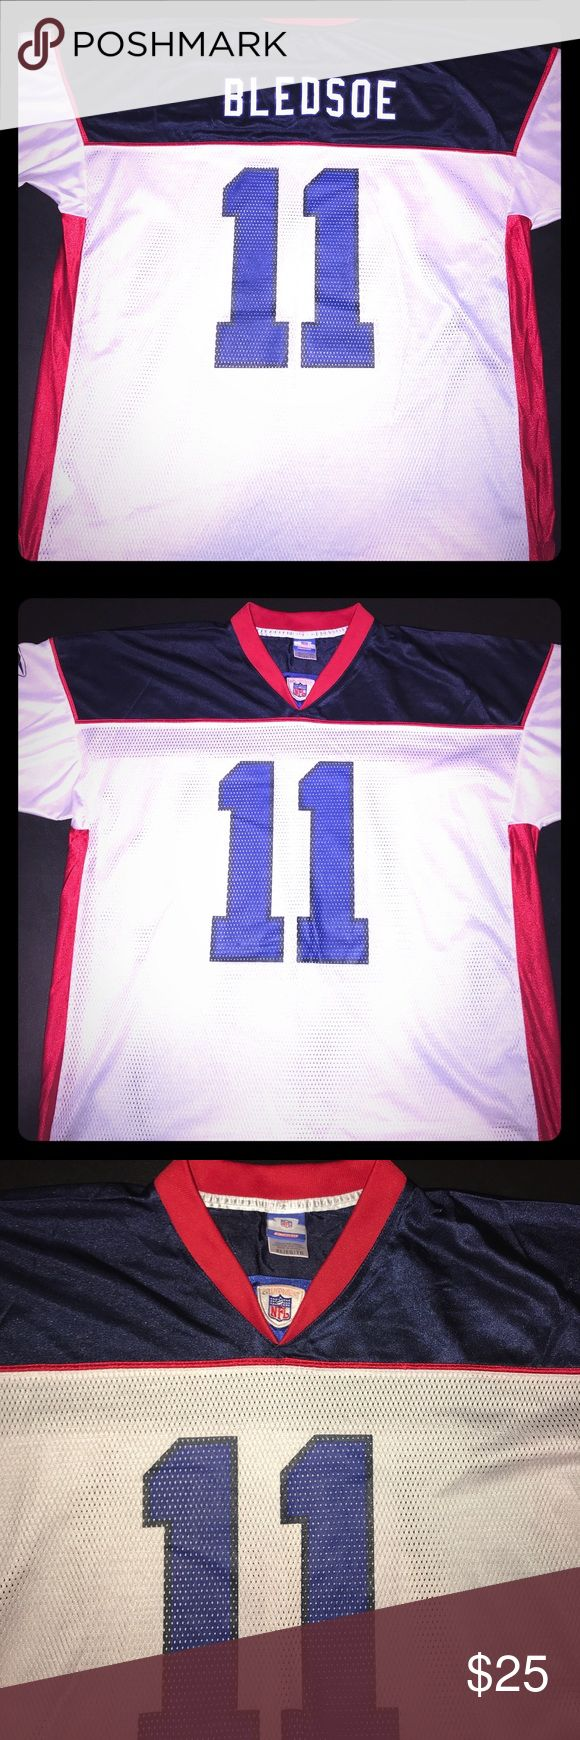 NFL Buffalo Bills Drew Bledsoe Reebok Jersey For sale is a NFL Buffalo Bills Drew Bledsoe #11 Reebok Jersey. Sized XL and in excellent condition. See photos for additional information or details. Feel free to contact with any questions. Reebok Shirts Tees - Short Sleeve